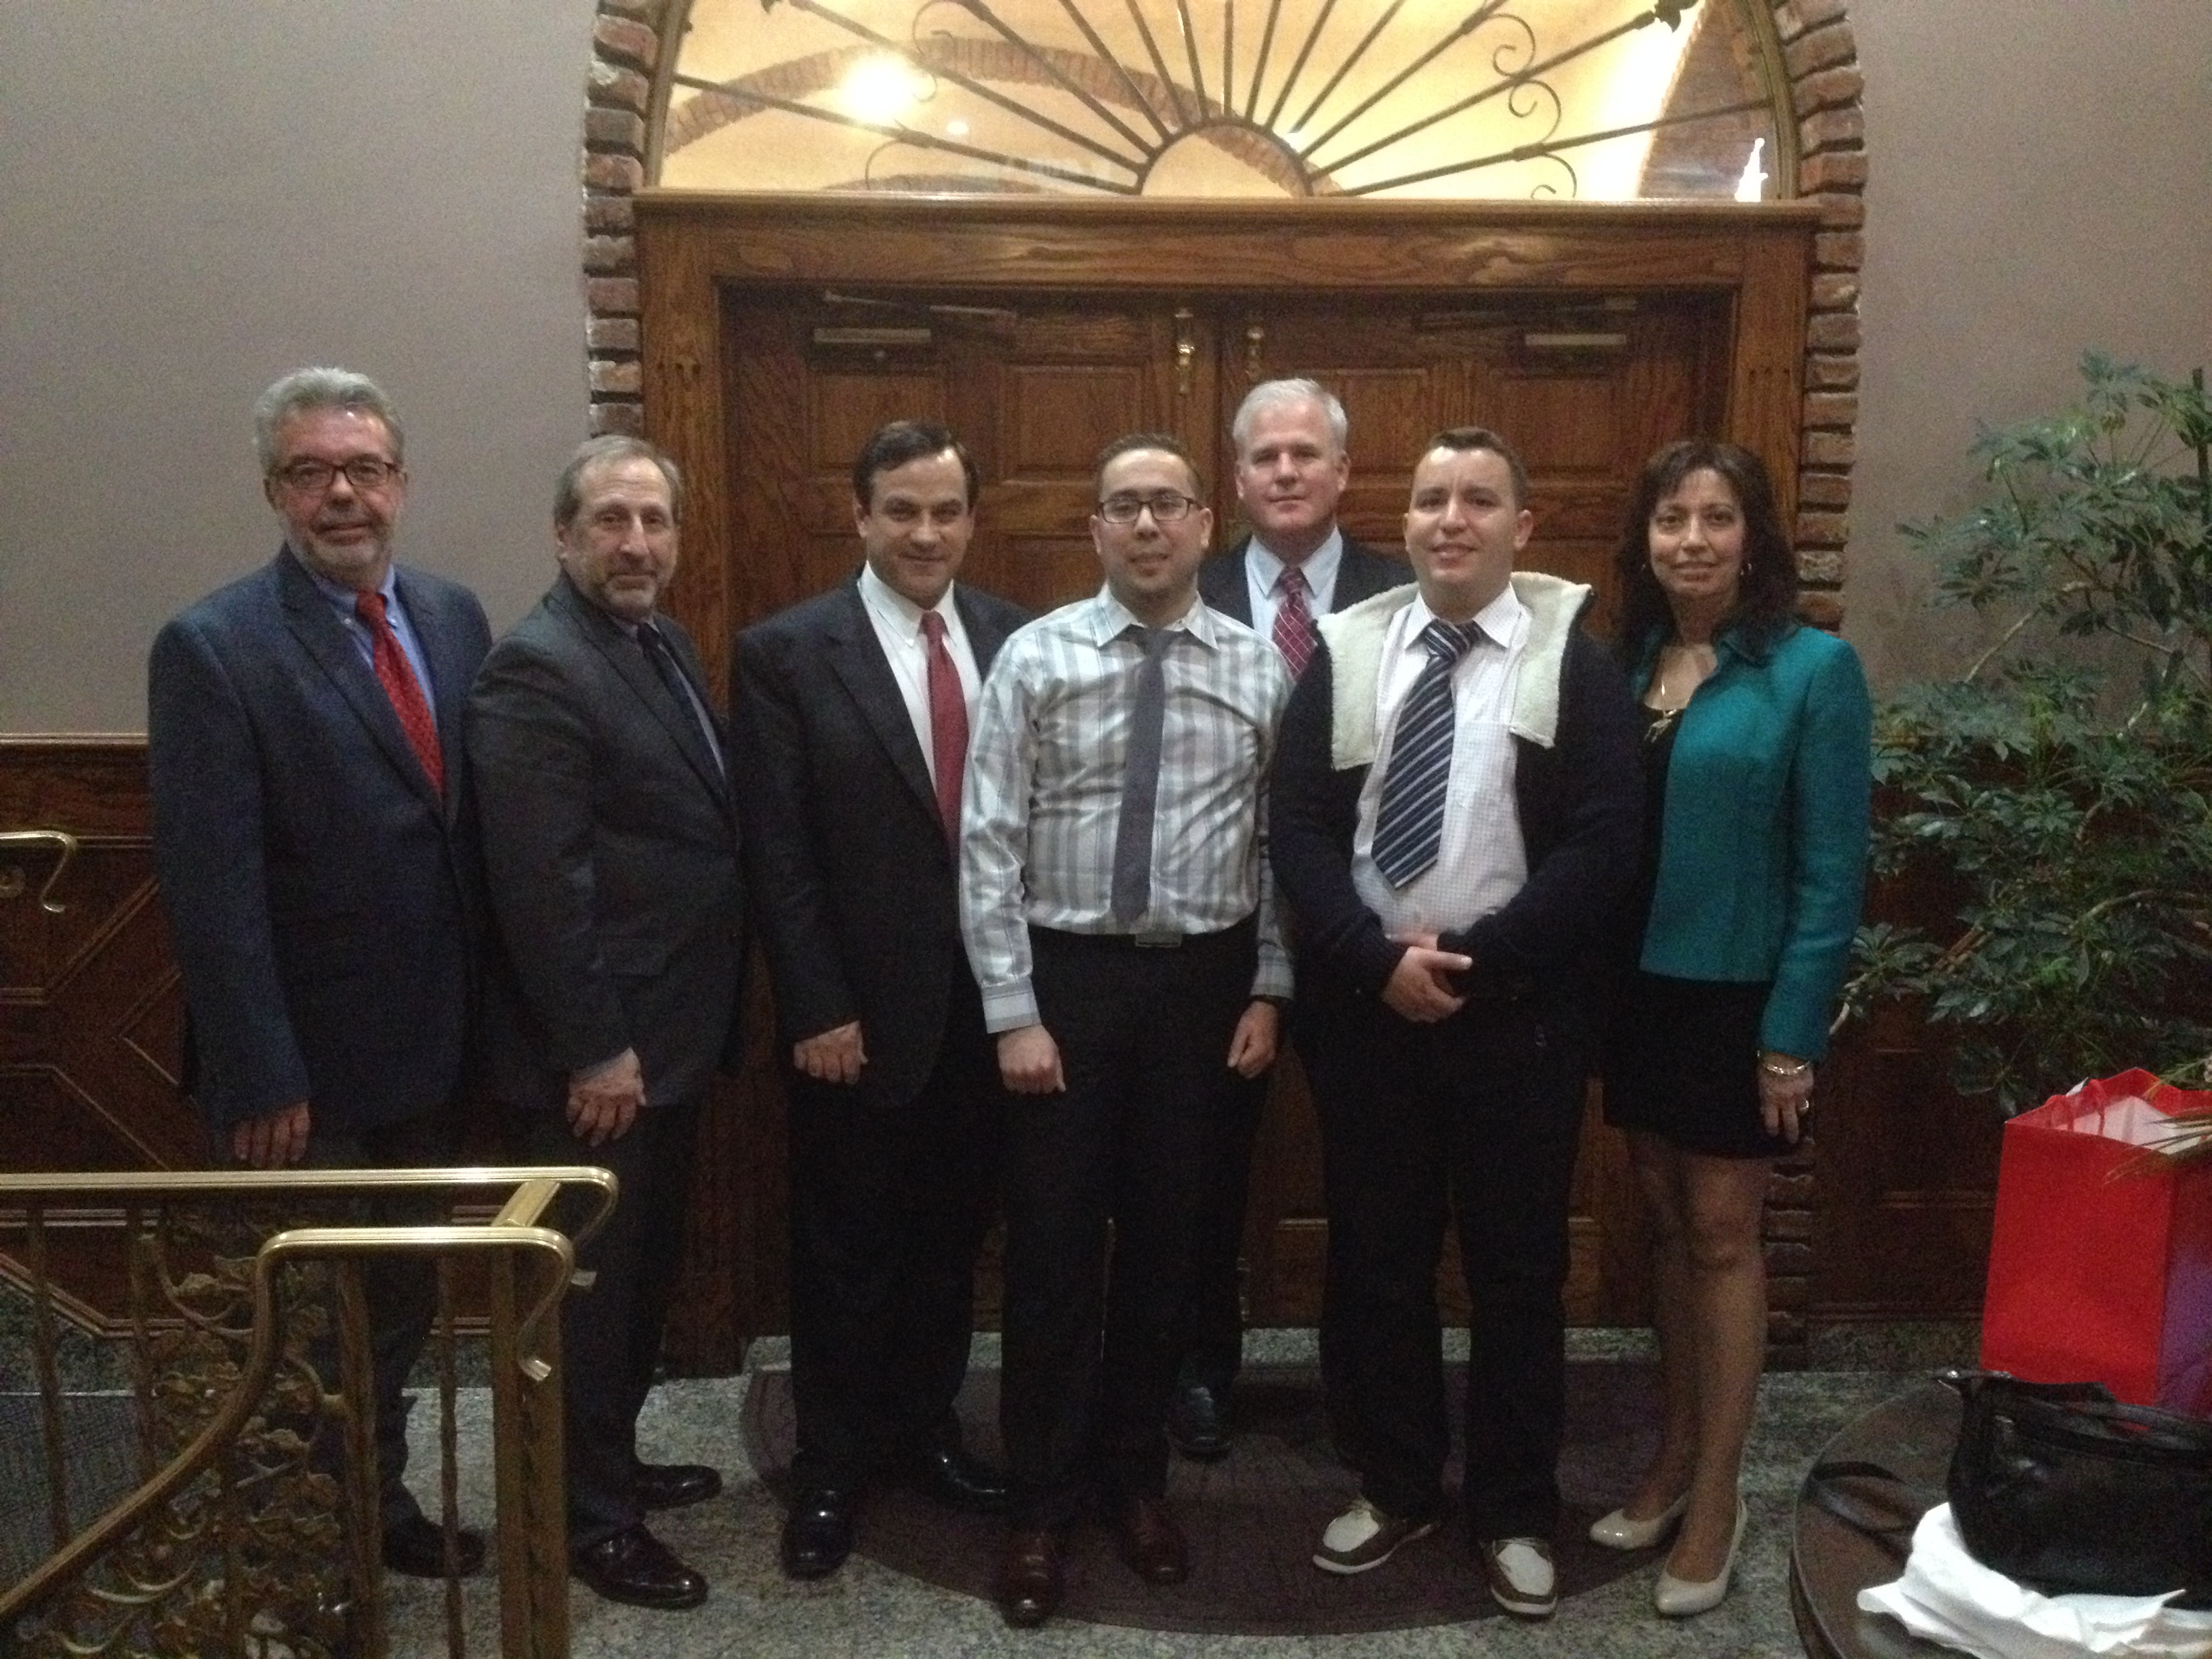 From left to right: Greg Mass, Bob Nardi, Sotirios G. Ziavras, Walid Bouabid (2015 Louis Berger Graduate Internship Recipient), Sean McGonical, Said Ouabi (2015 Louis Berger Graduate Internship Recipient), Clarisa Gonzalez-Lenahan